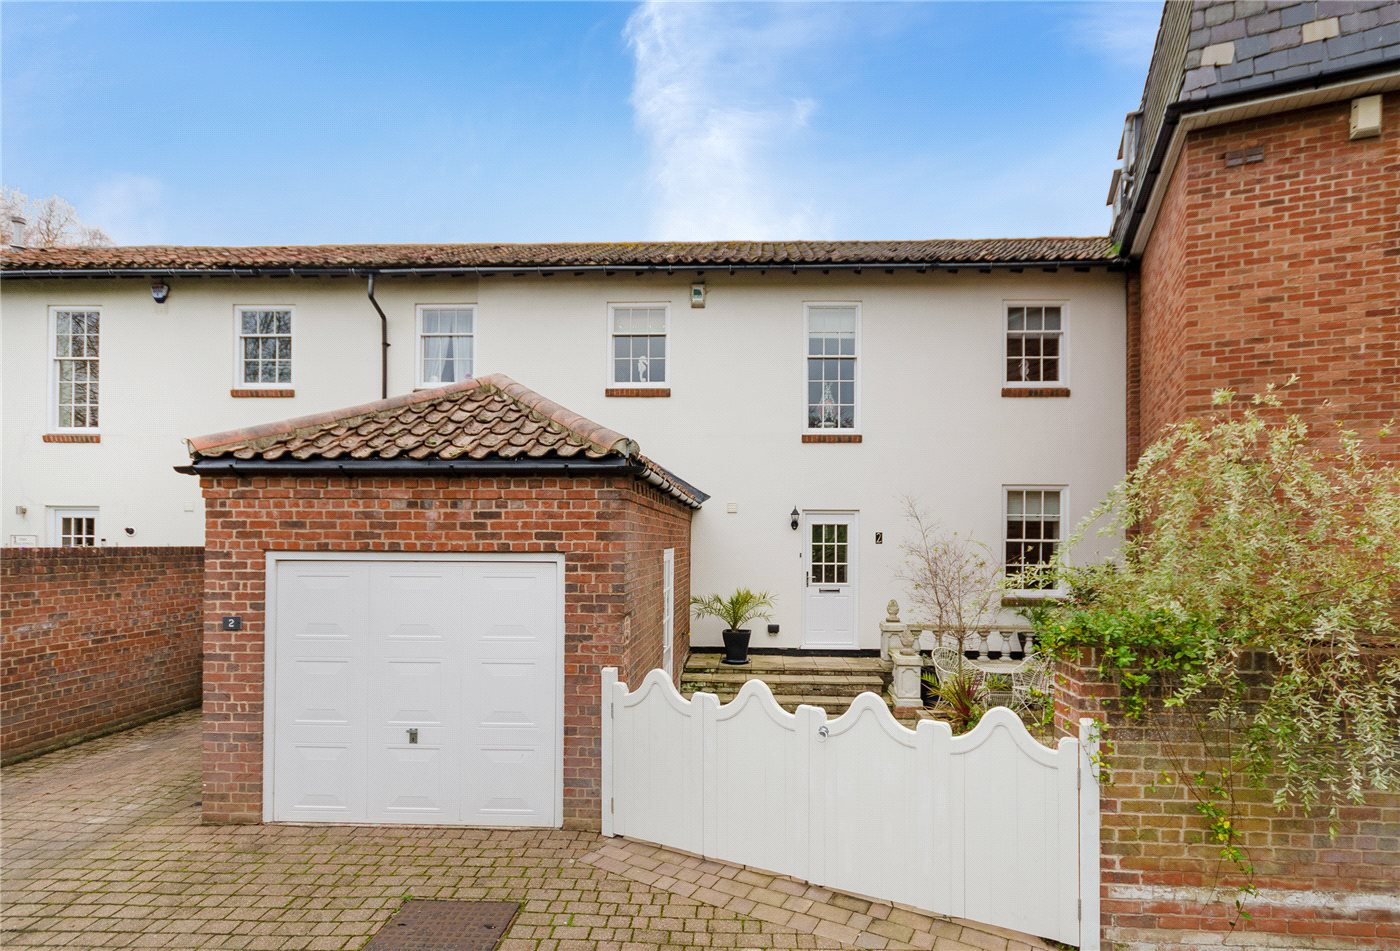 3 Bedrooms Town House for sale in Mill Drive, Grantham, NG31